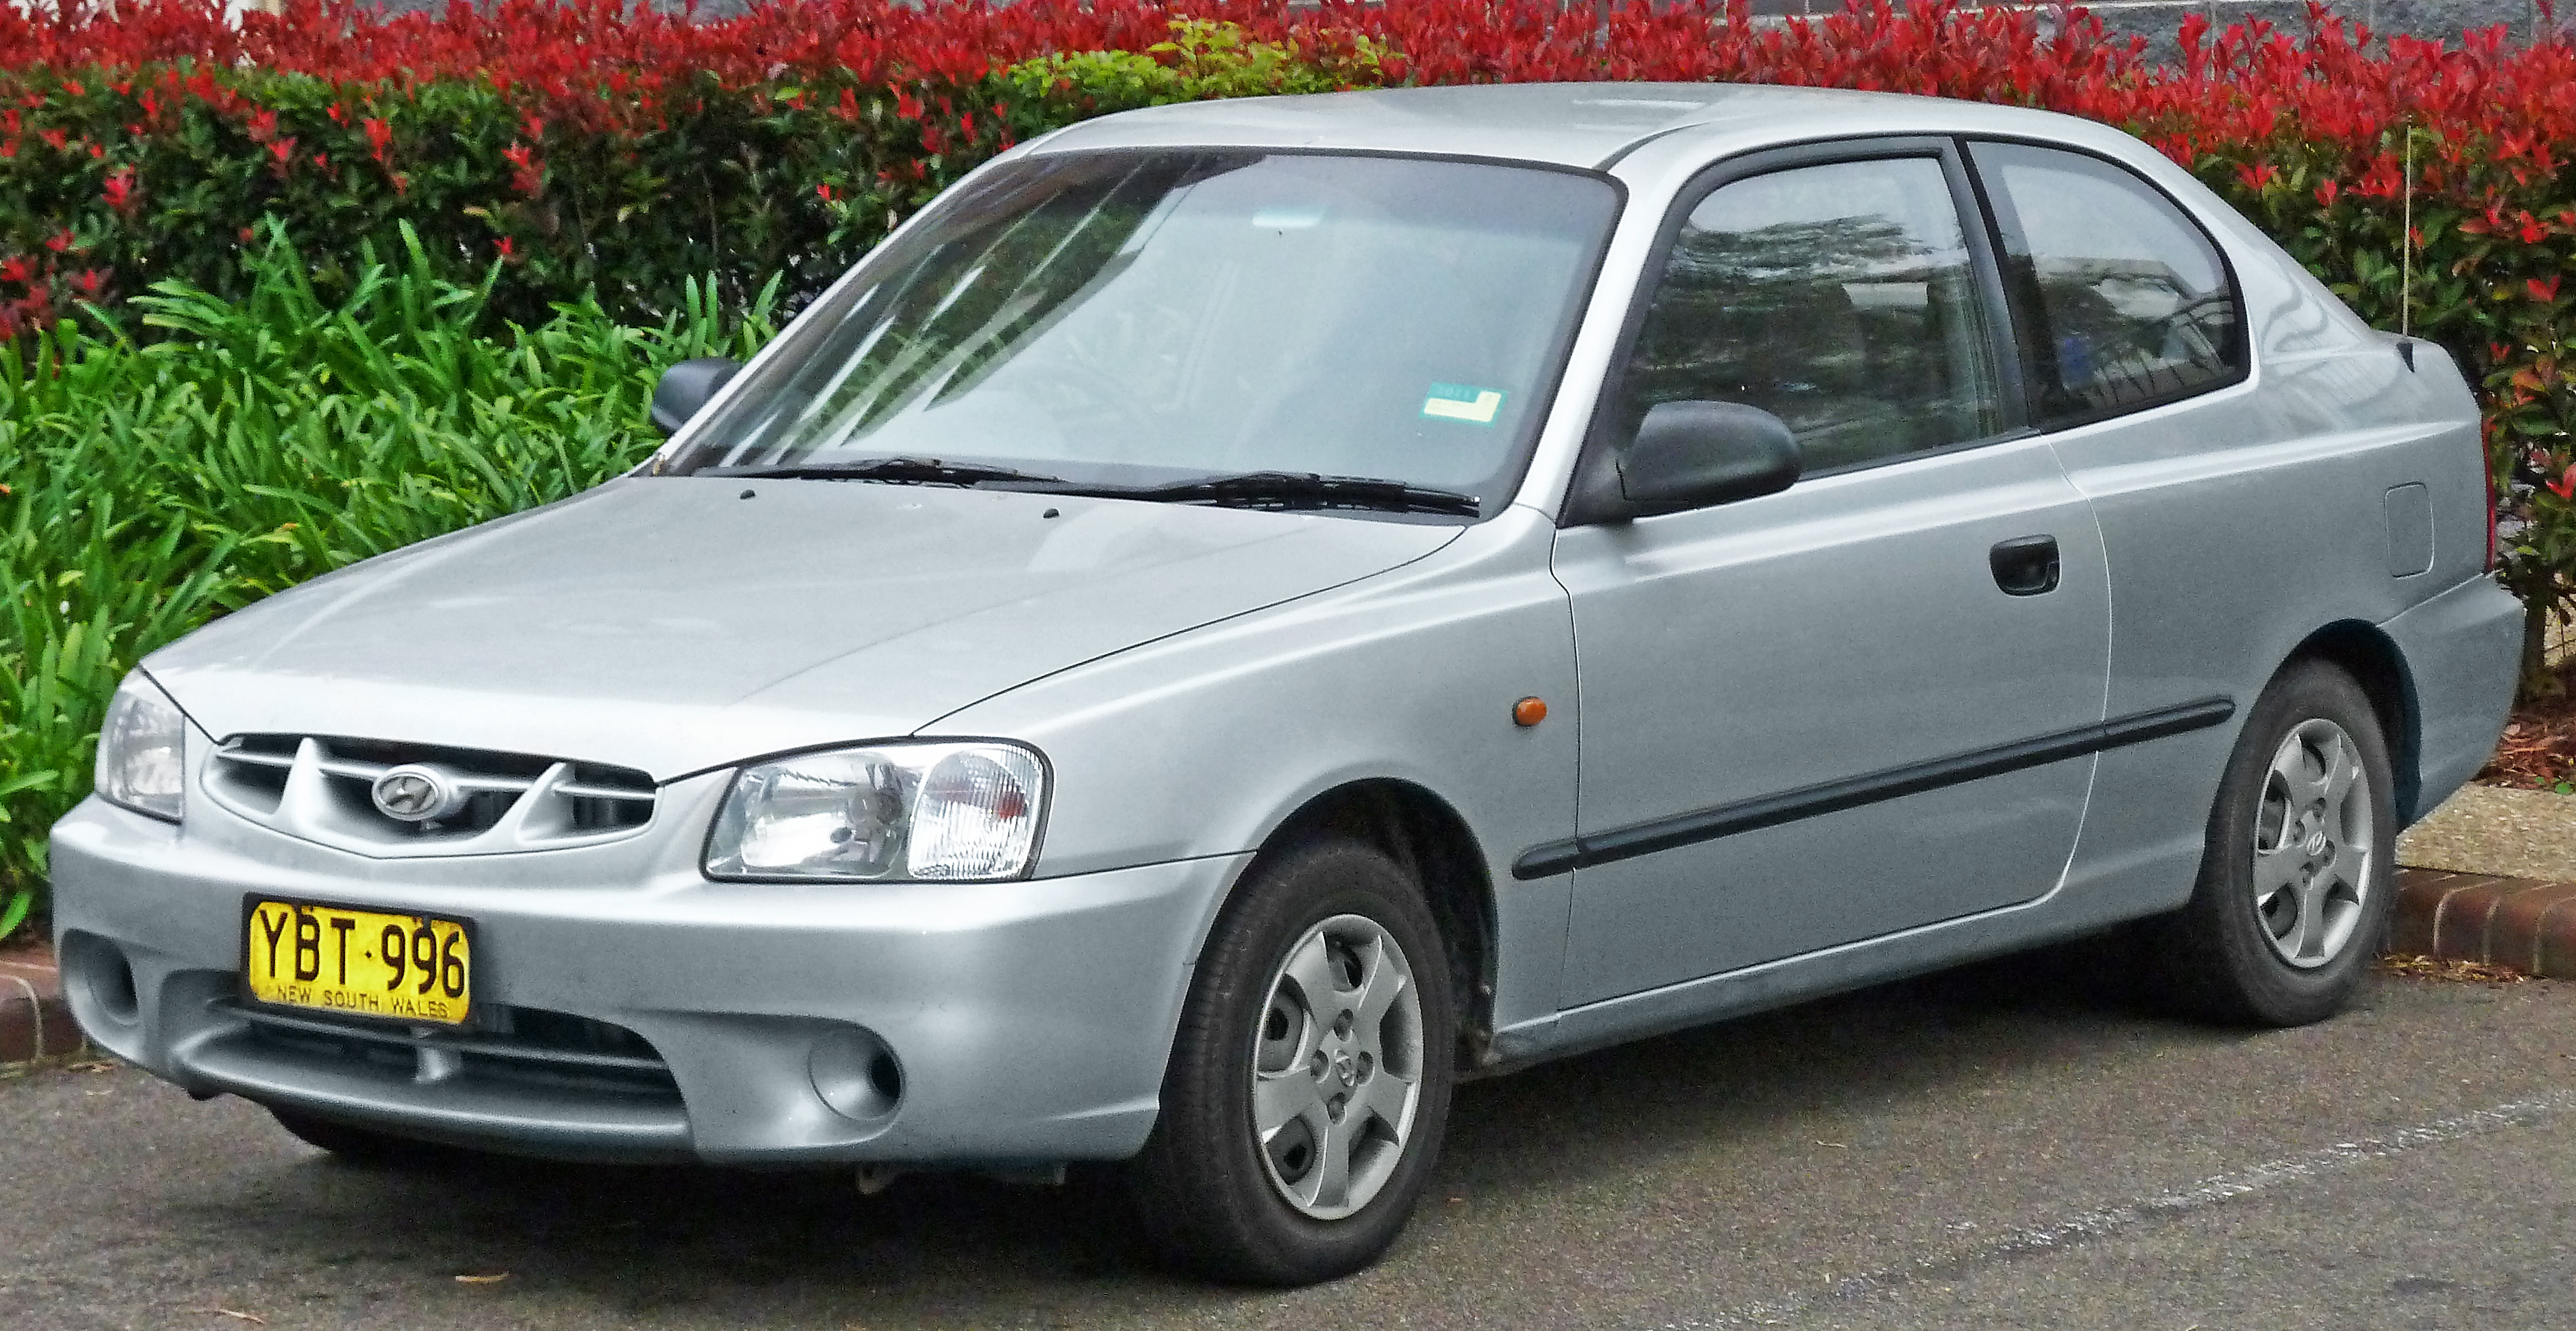 File 2000 2003 Hyundai Accent Lc Gl 3 Door Hatchback 2011 04 22 Jpg Wikimedia Commons